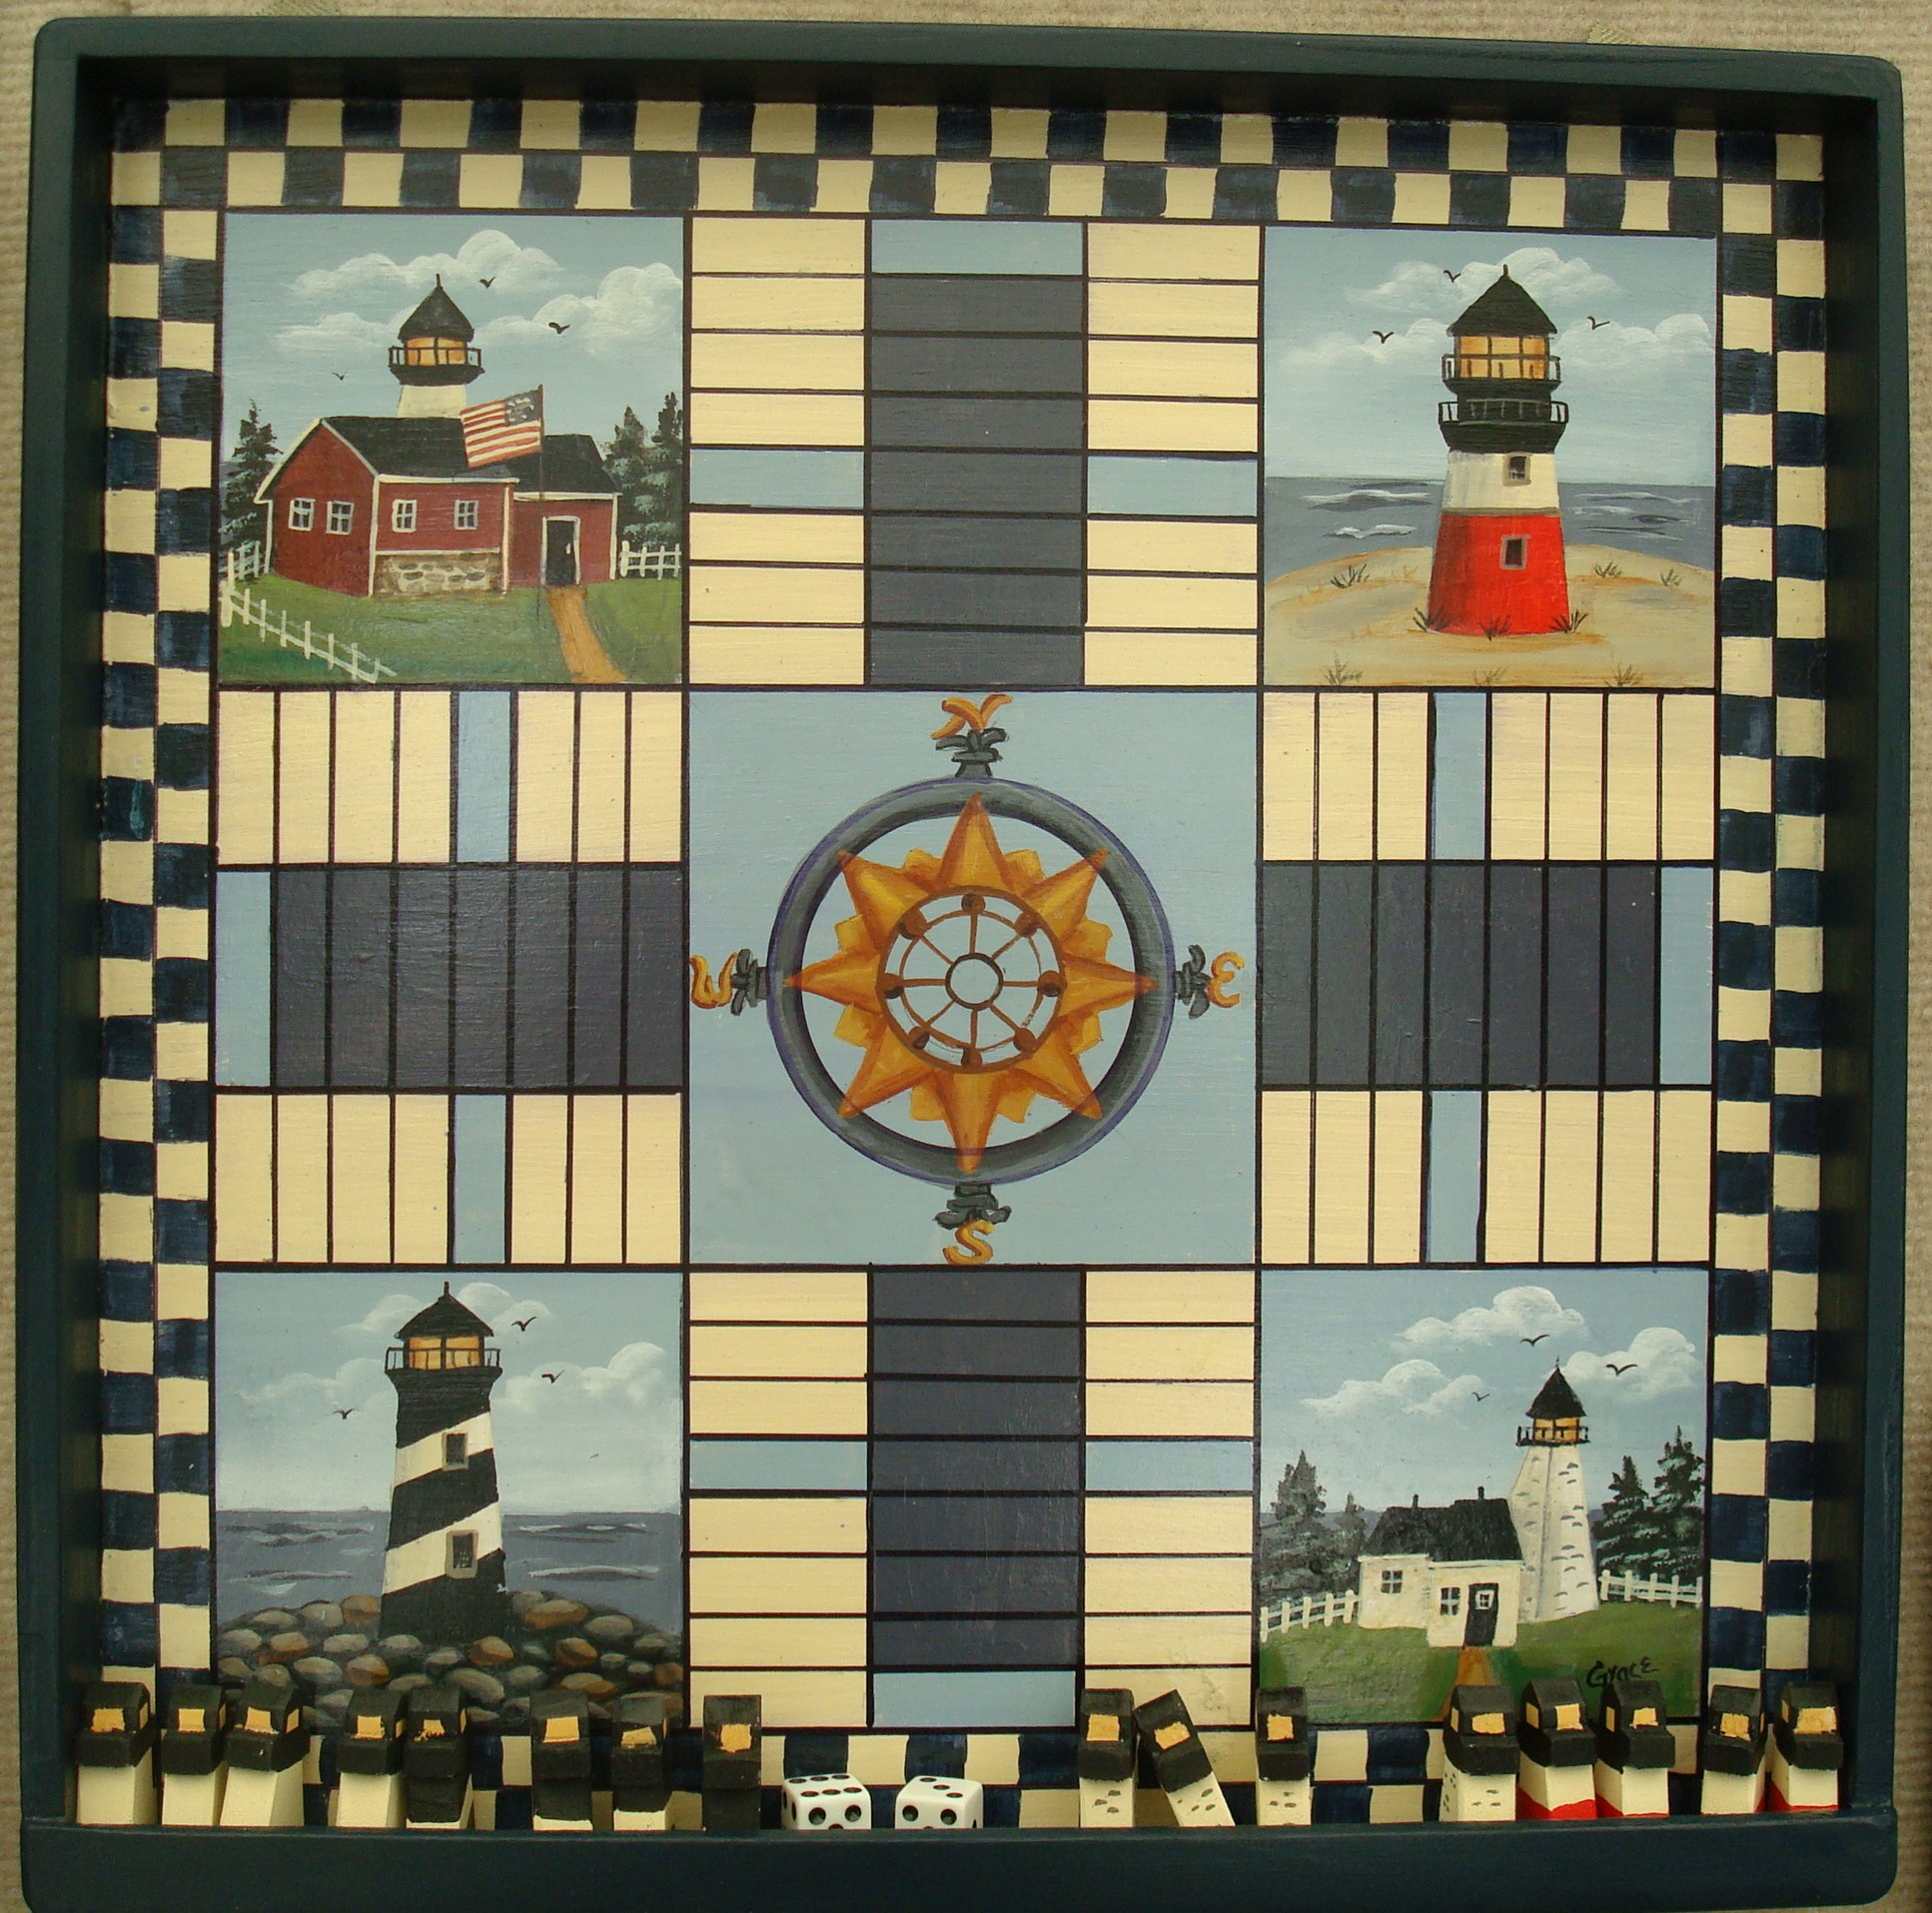 Lighthouse Pachisi Board